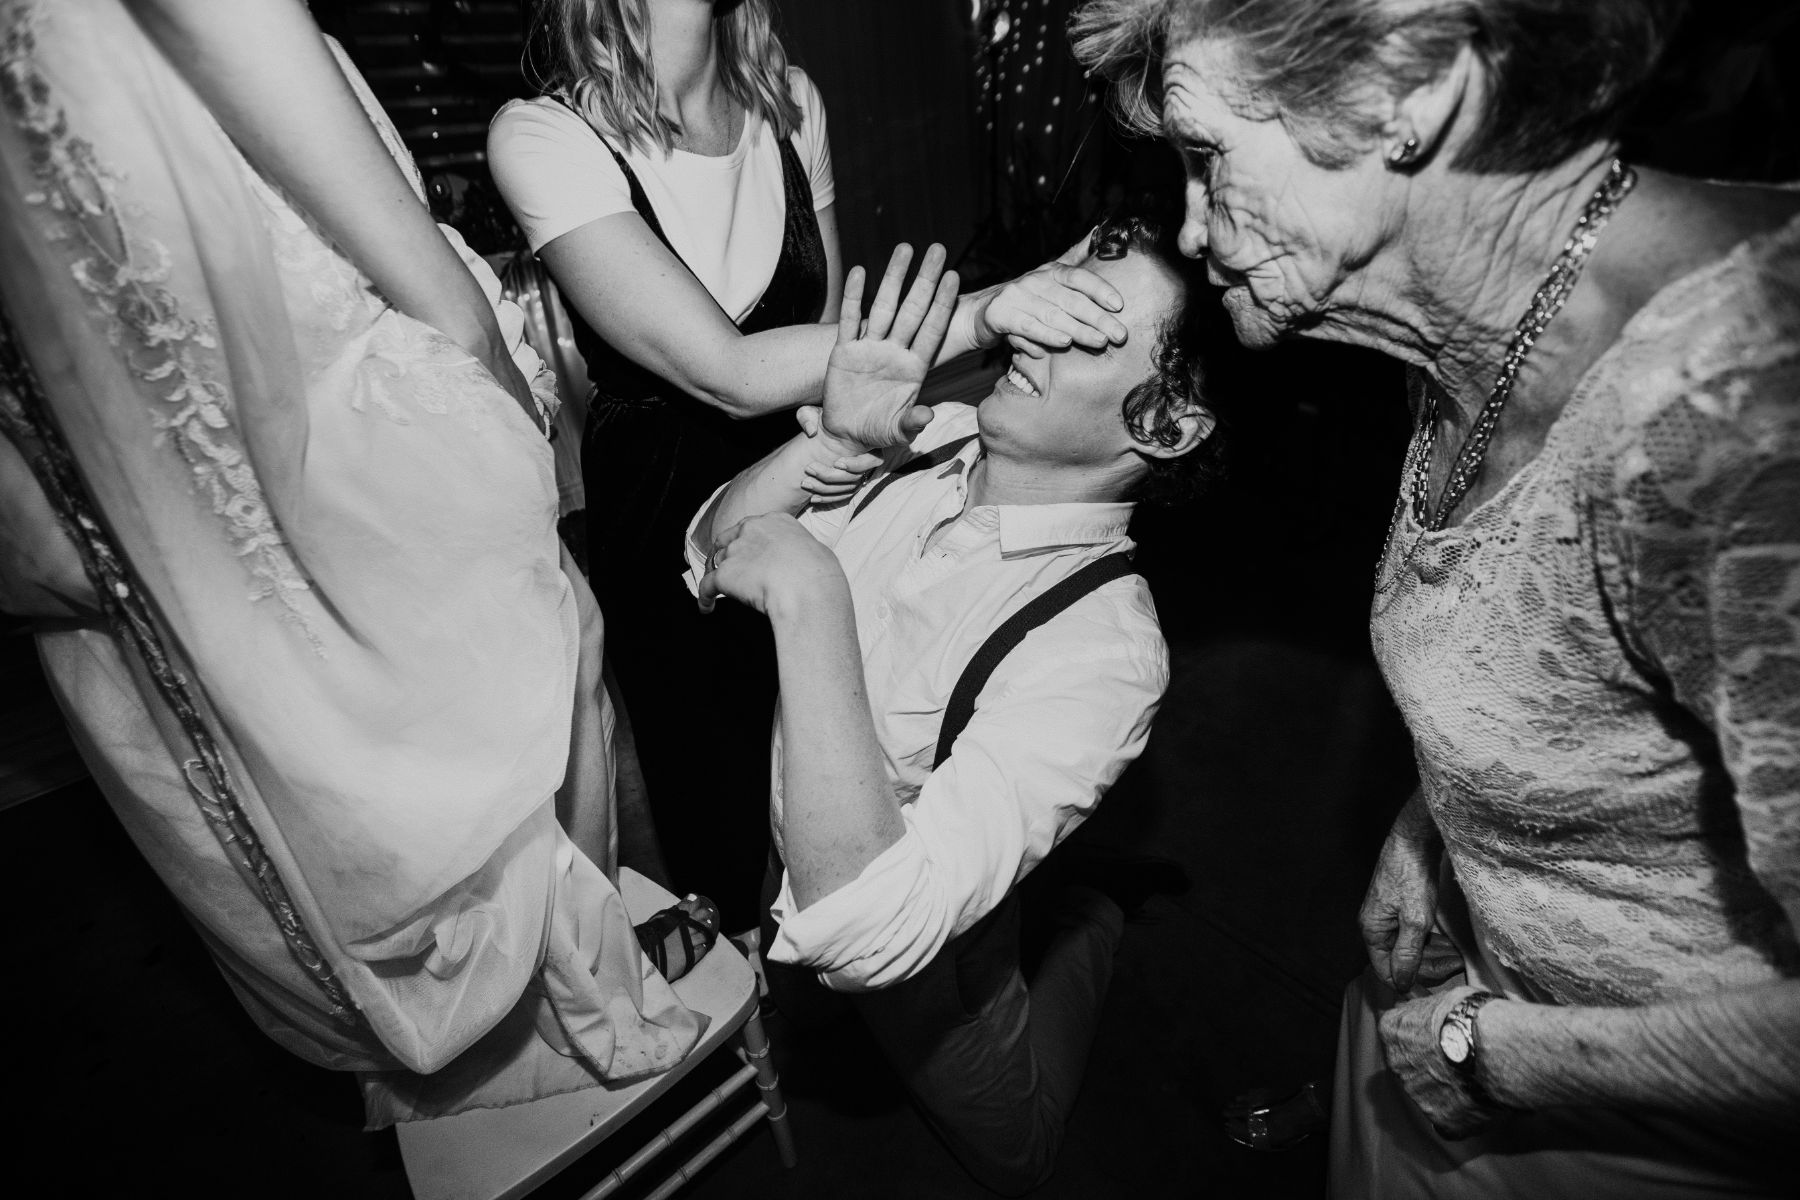 Documentary wedding photograph of groom about to receive wedding garter from bride as grandmother watches